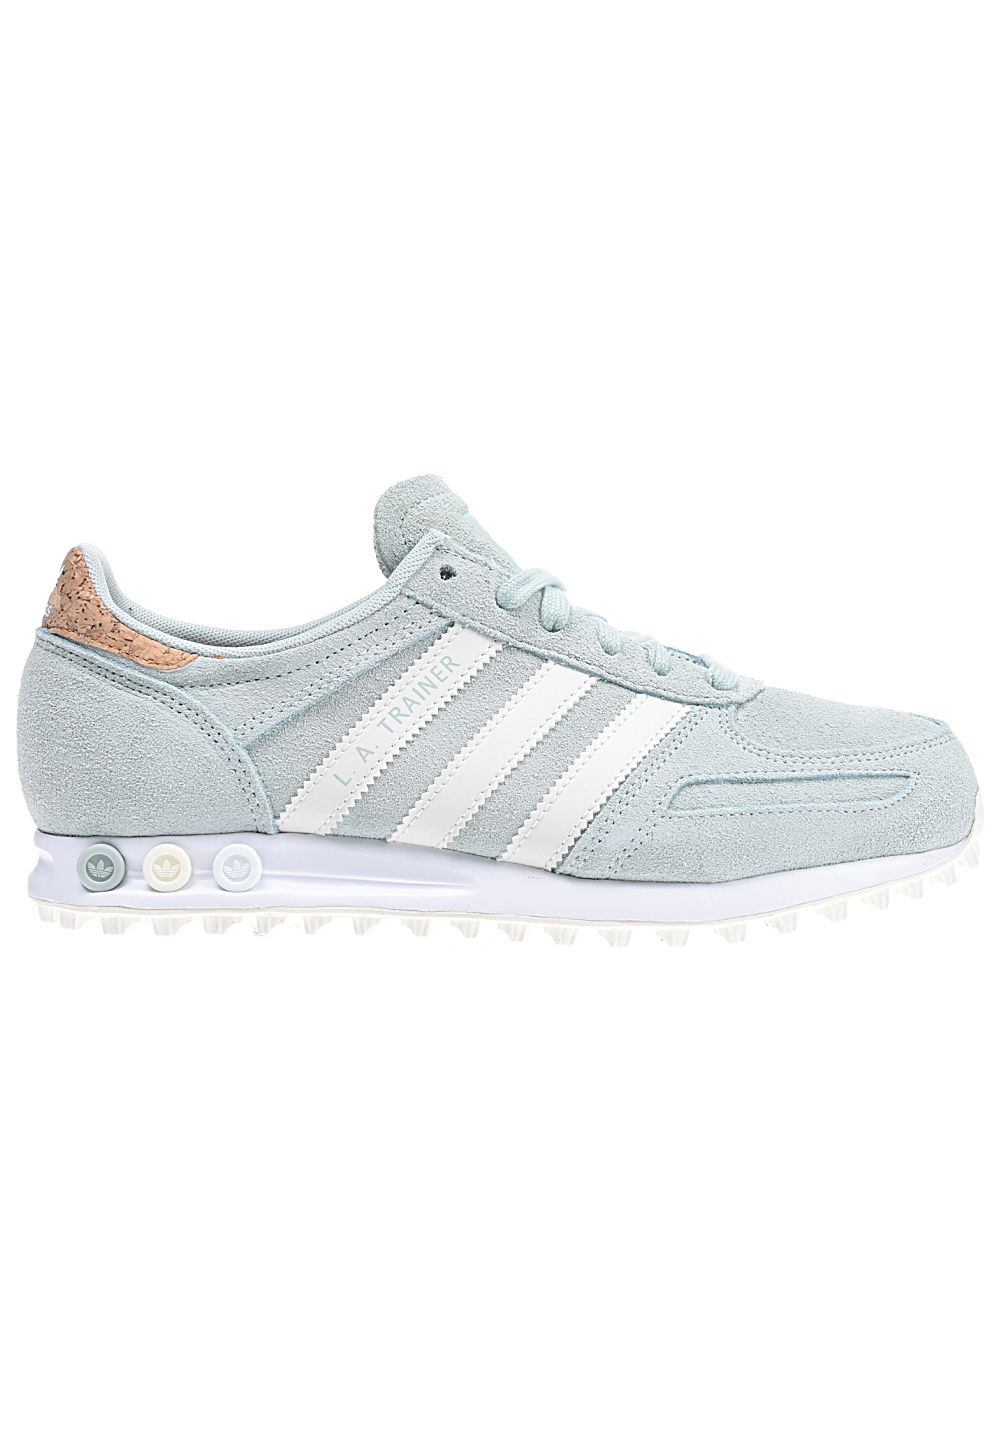 ADIDAS ORIGINALS La Trainer - Sneakers voor Dames - Groen